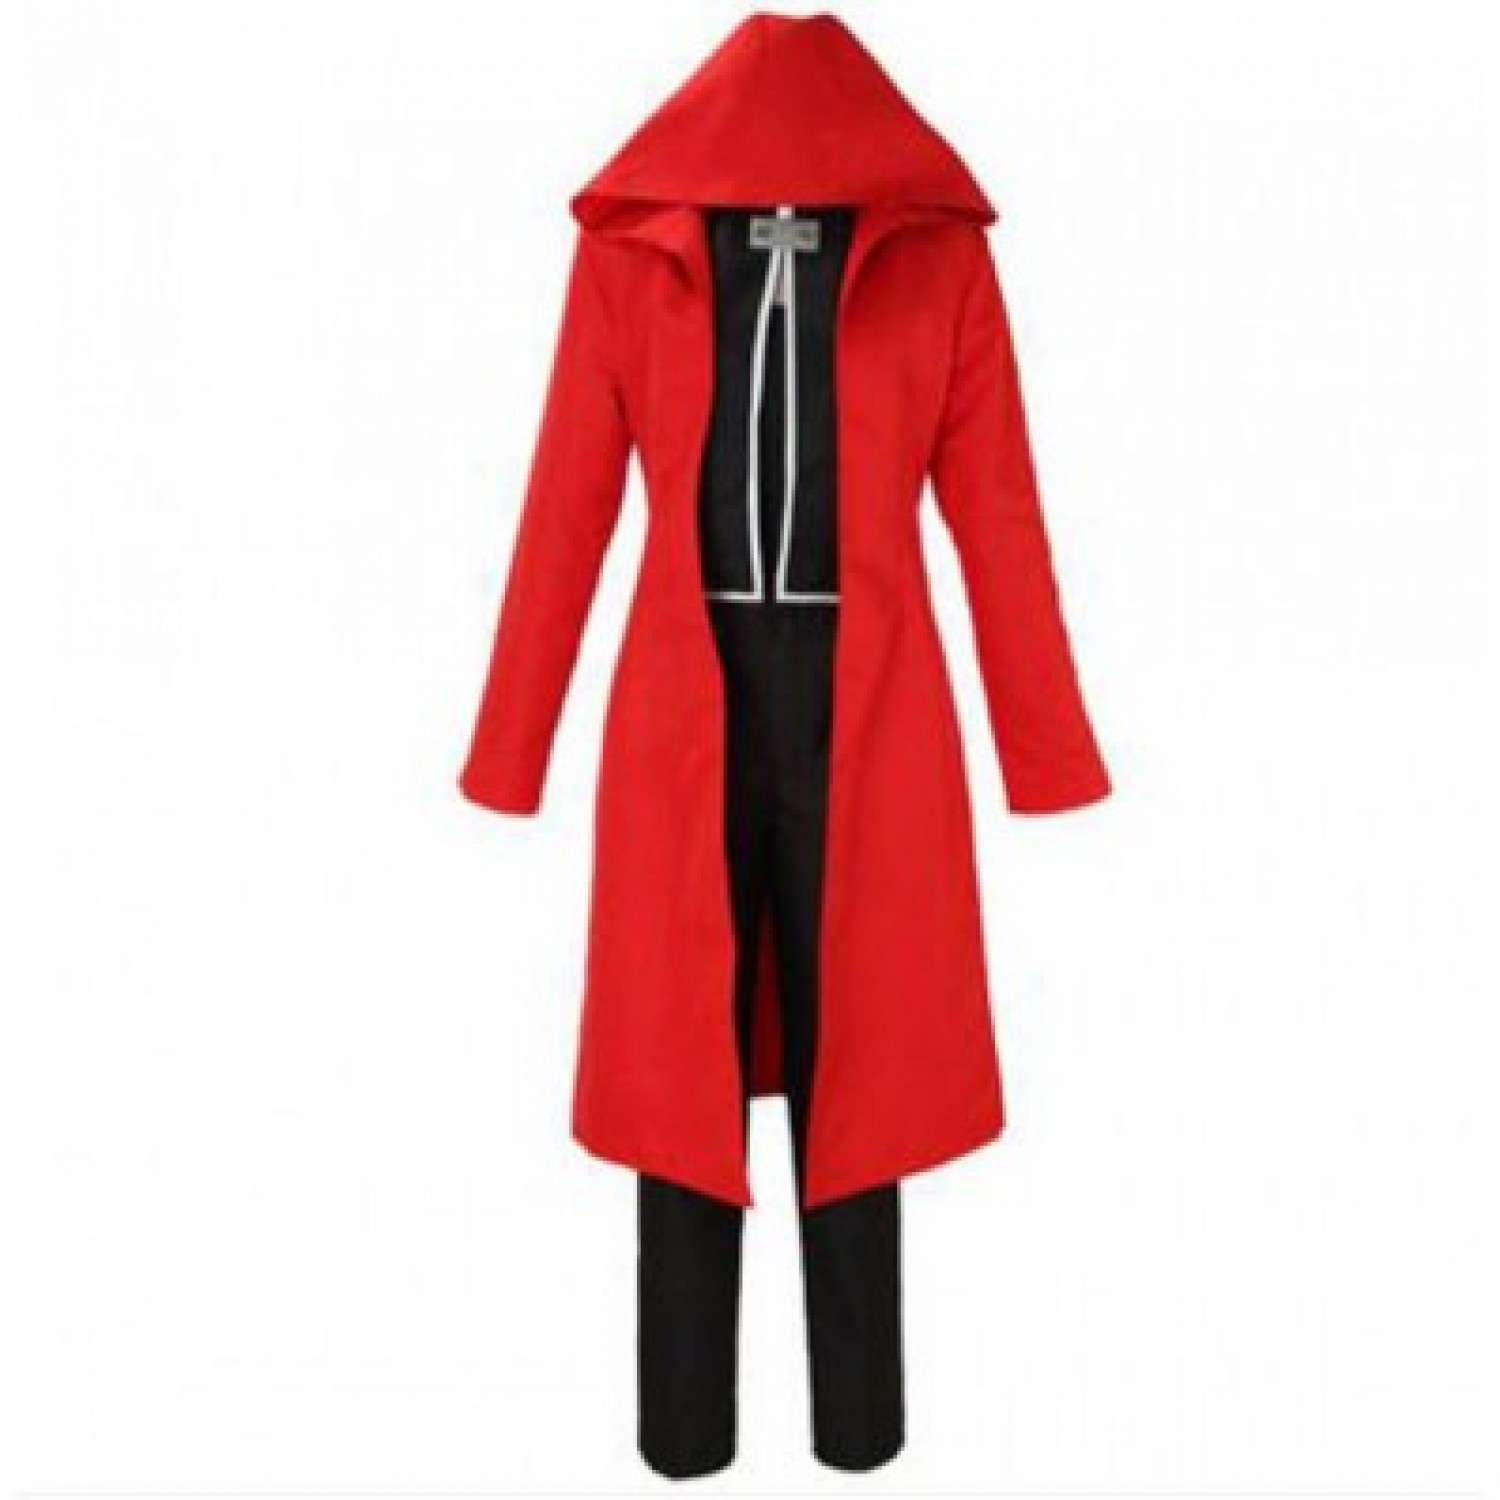 Fullmetal Alchemist Edward Elric's Japan Anime Cosplay Costume